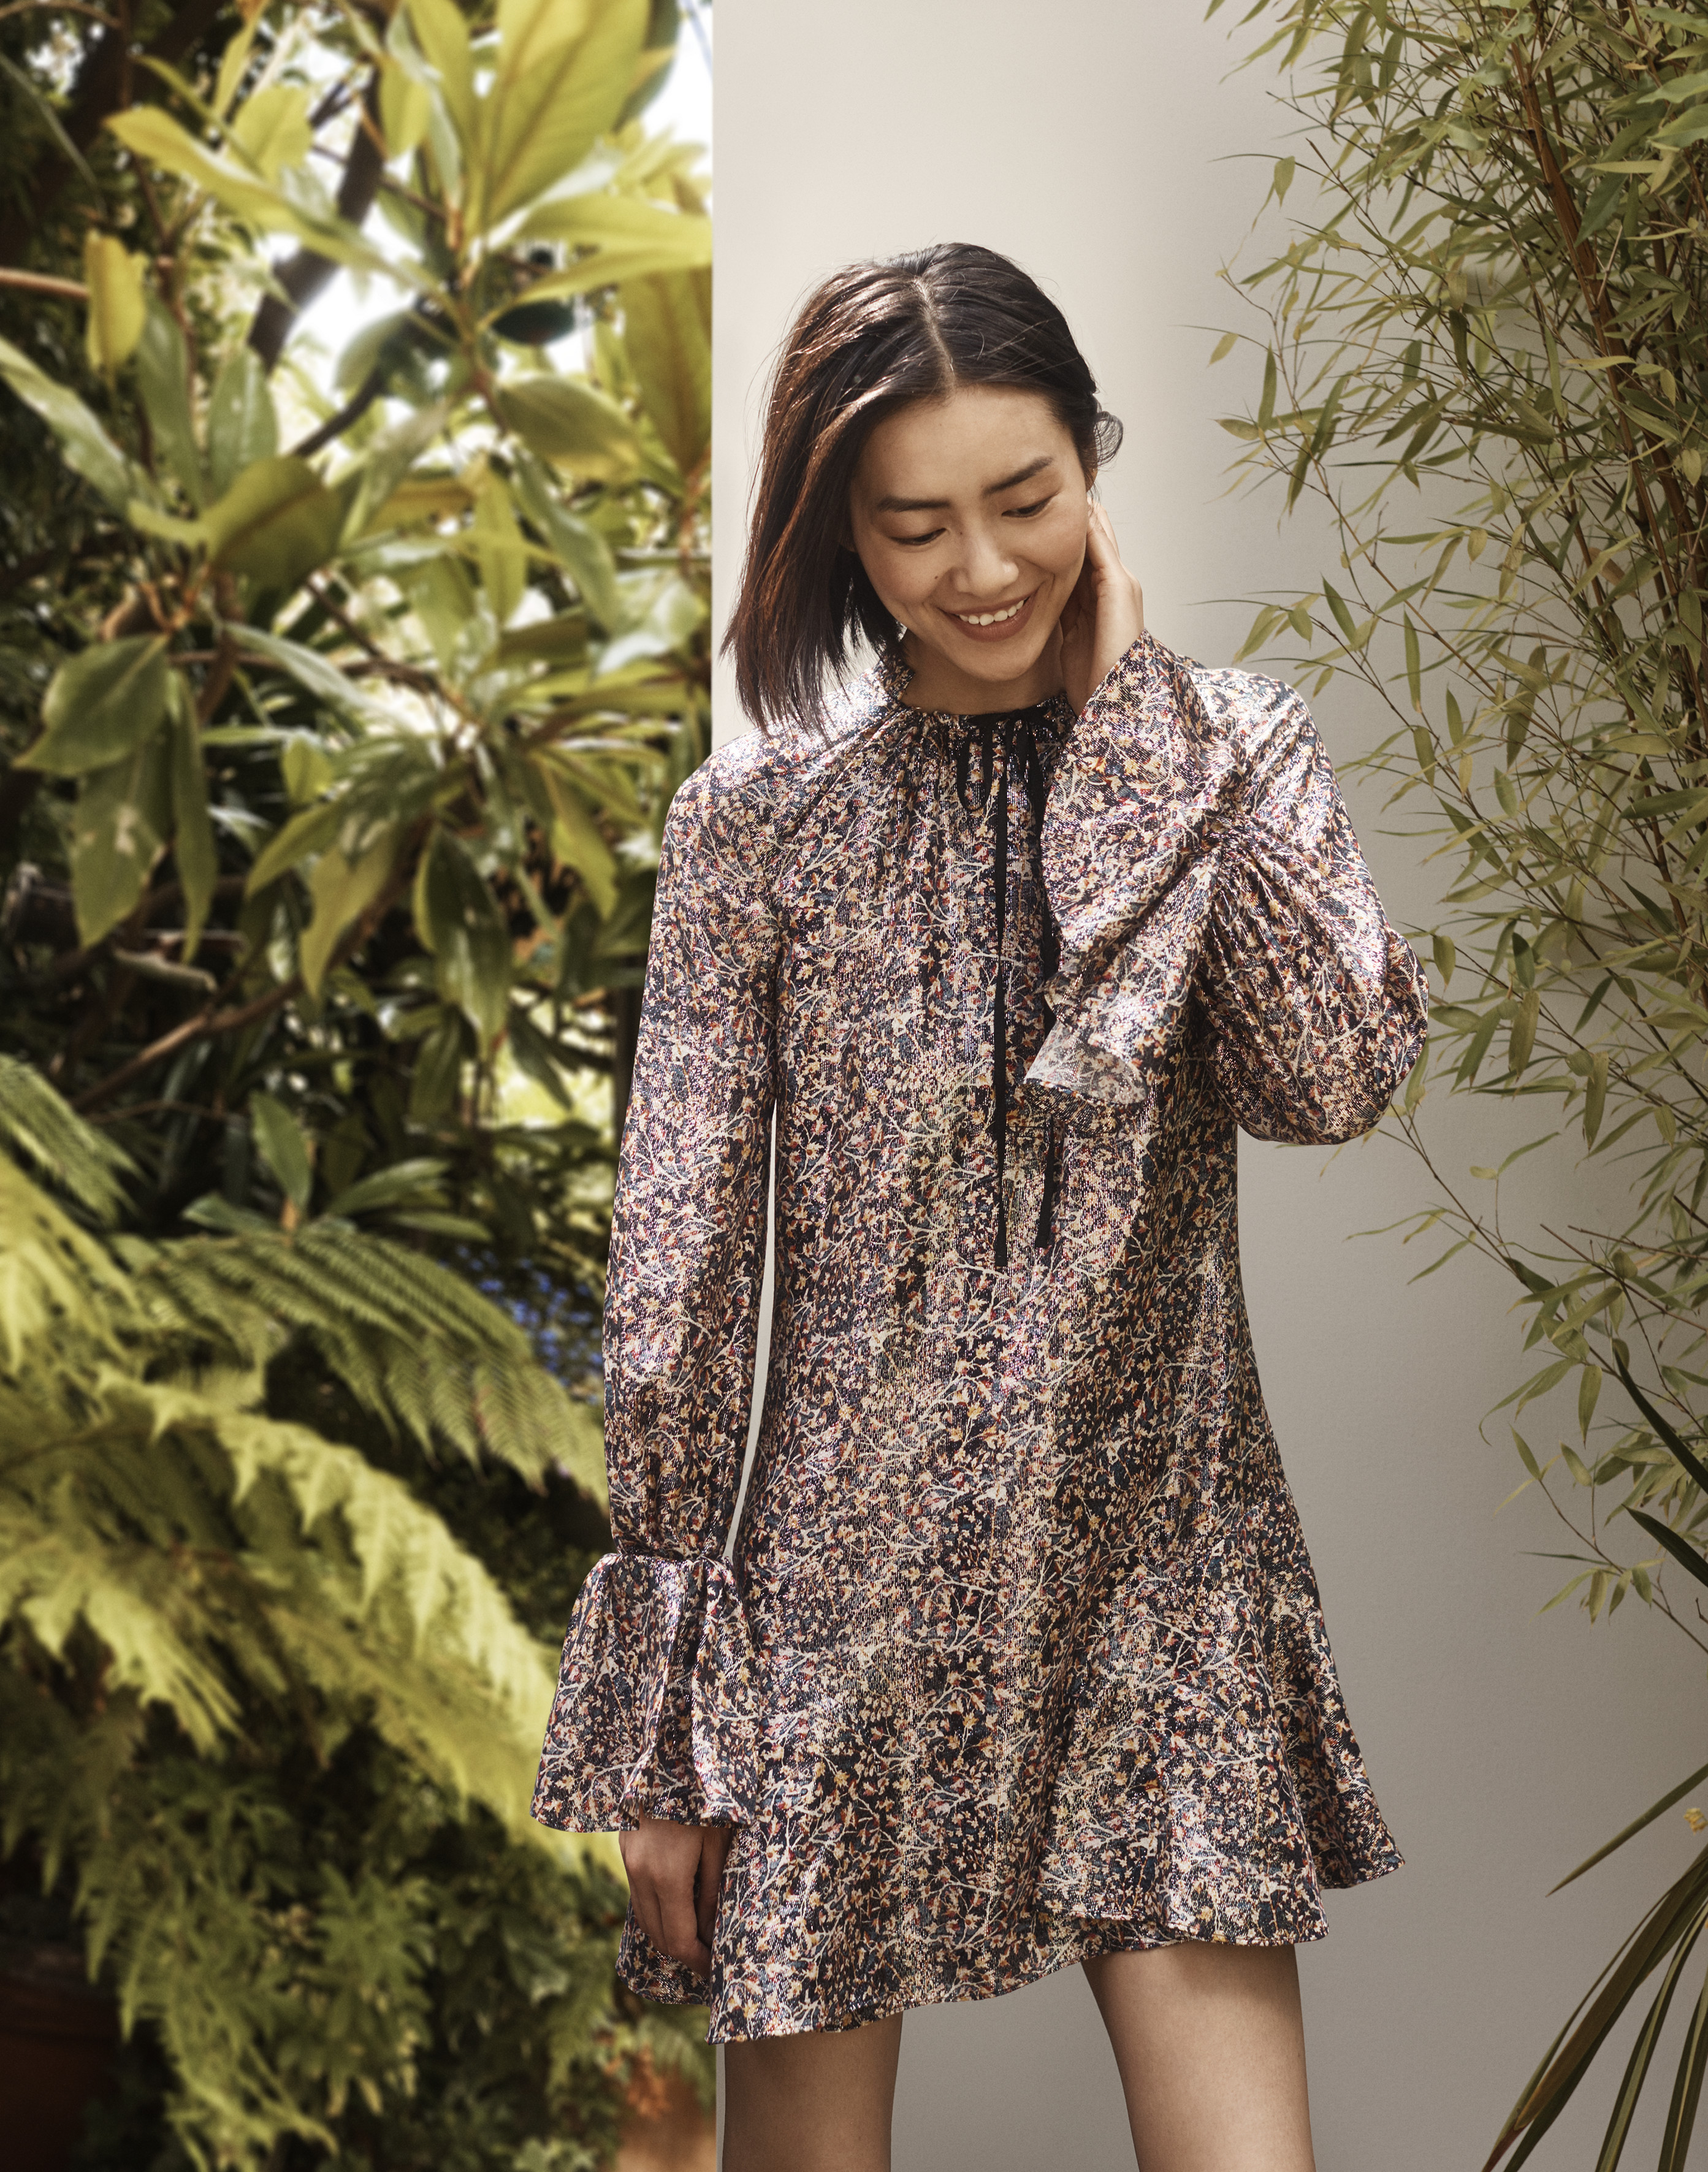 H&M Conscious Exclusive A/W 2018